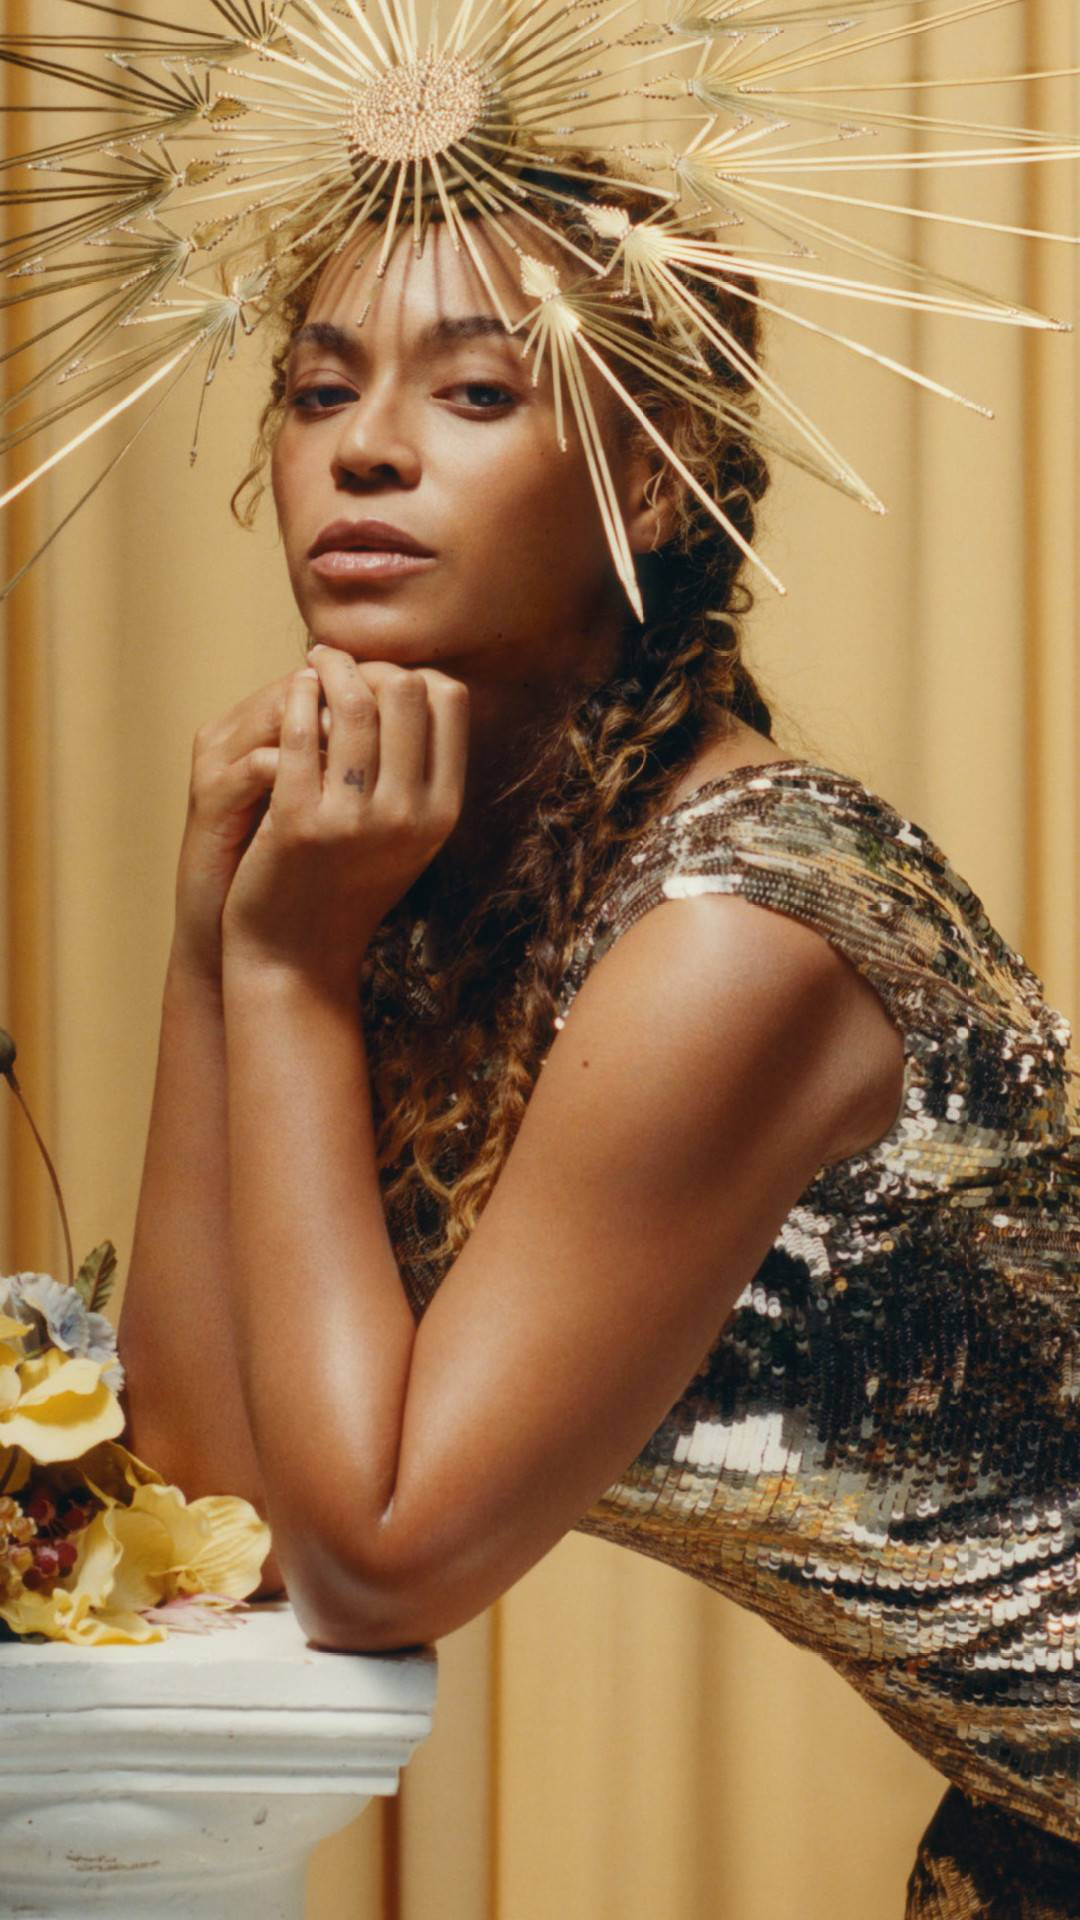 rs_1080x1920-180806062757-PT-Beyonce-Sept-Vogue-J3R-080618